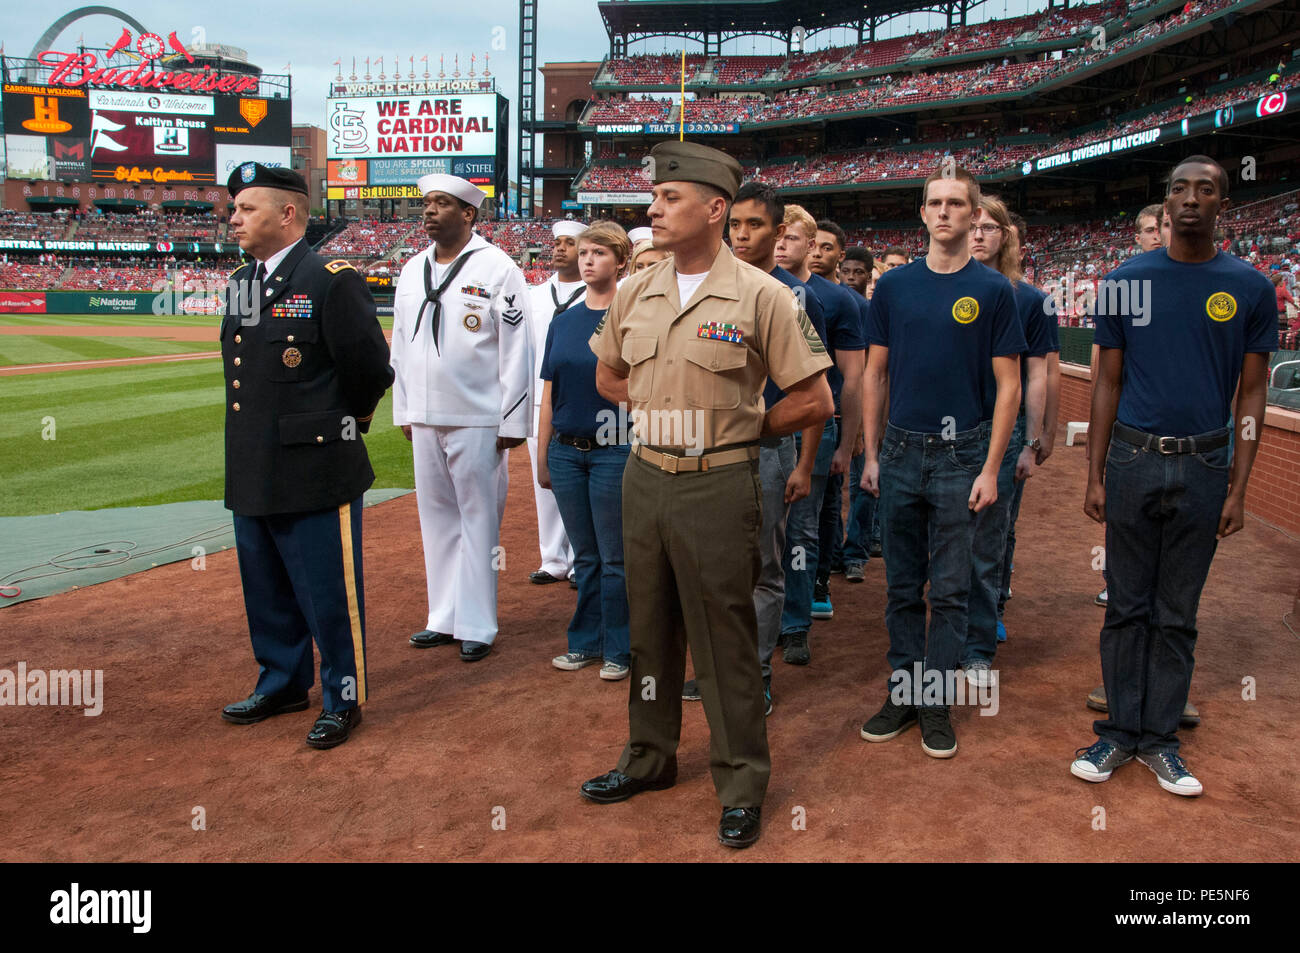 150926-N-II118-034 ST. LOUIS (Sept. 26, 2015) – Service members and Delayed Entry Program participants from St. Louis Military Entrance Processing Station (MEPS) wait to take part in a joint oath of enlistment ceremony in recognition of the St. Louis Cardinals annual Military Appreciation Day. Seventy-three MEPS applicants participated in the event. (U.S. Navy photo by Mass Communication Specialist 1st Class Latrice Jackson/Released) Stock Photo